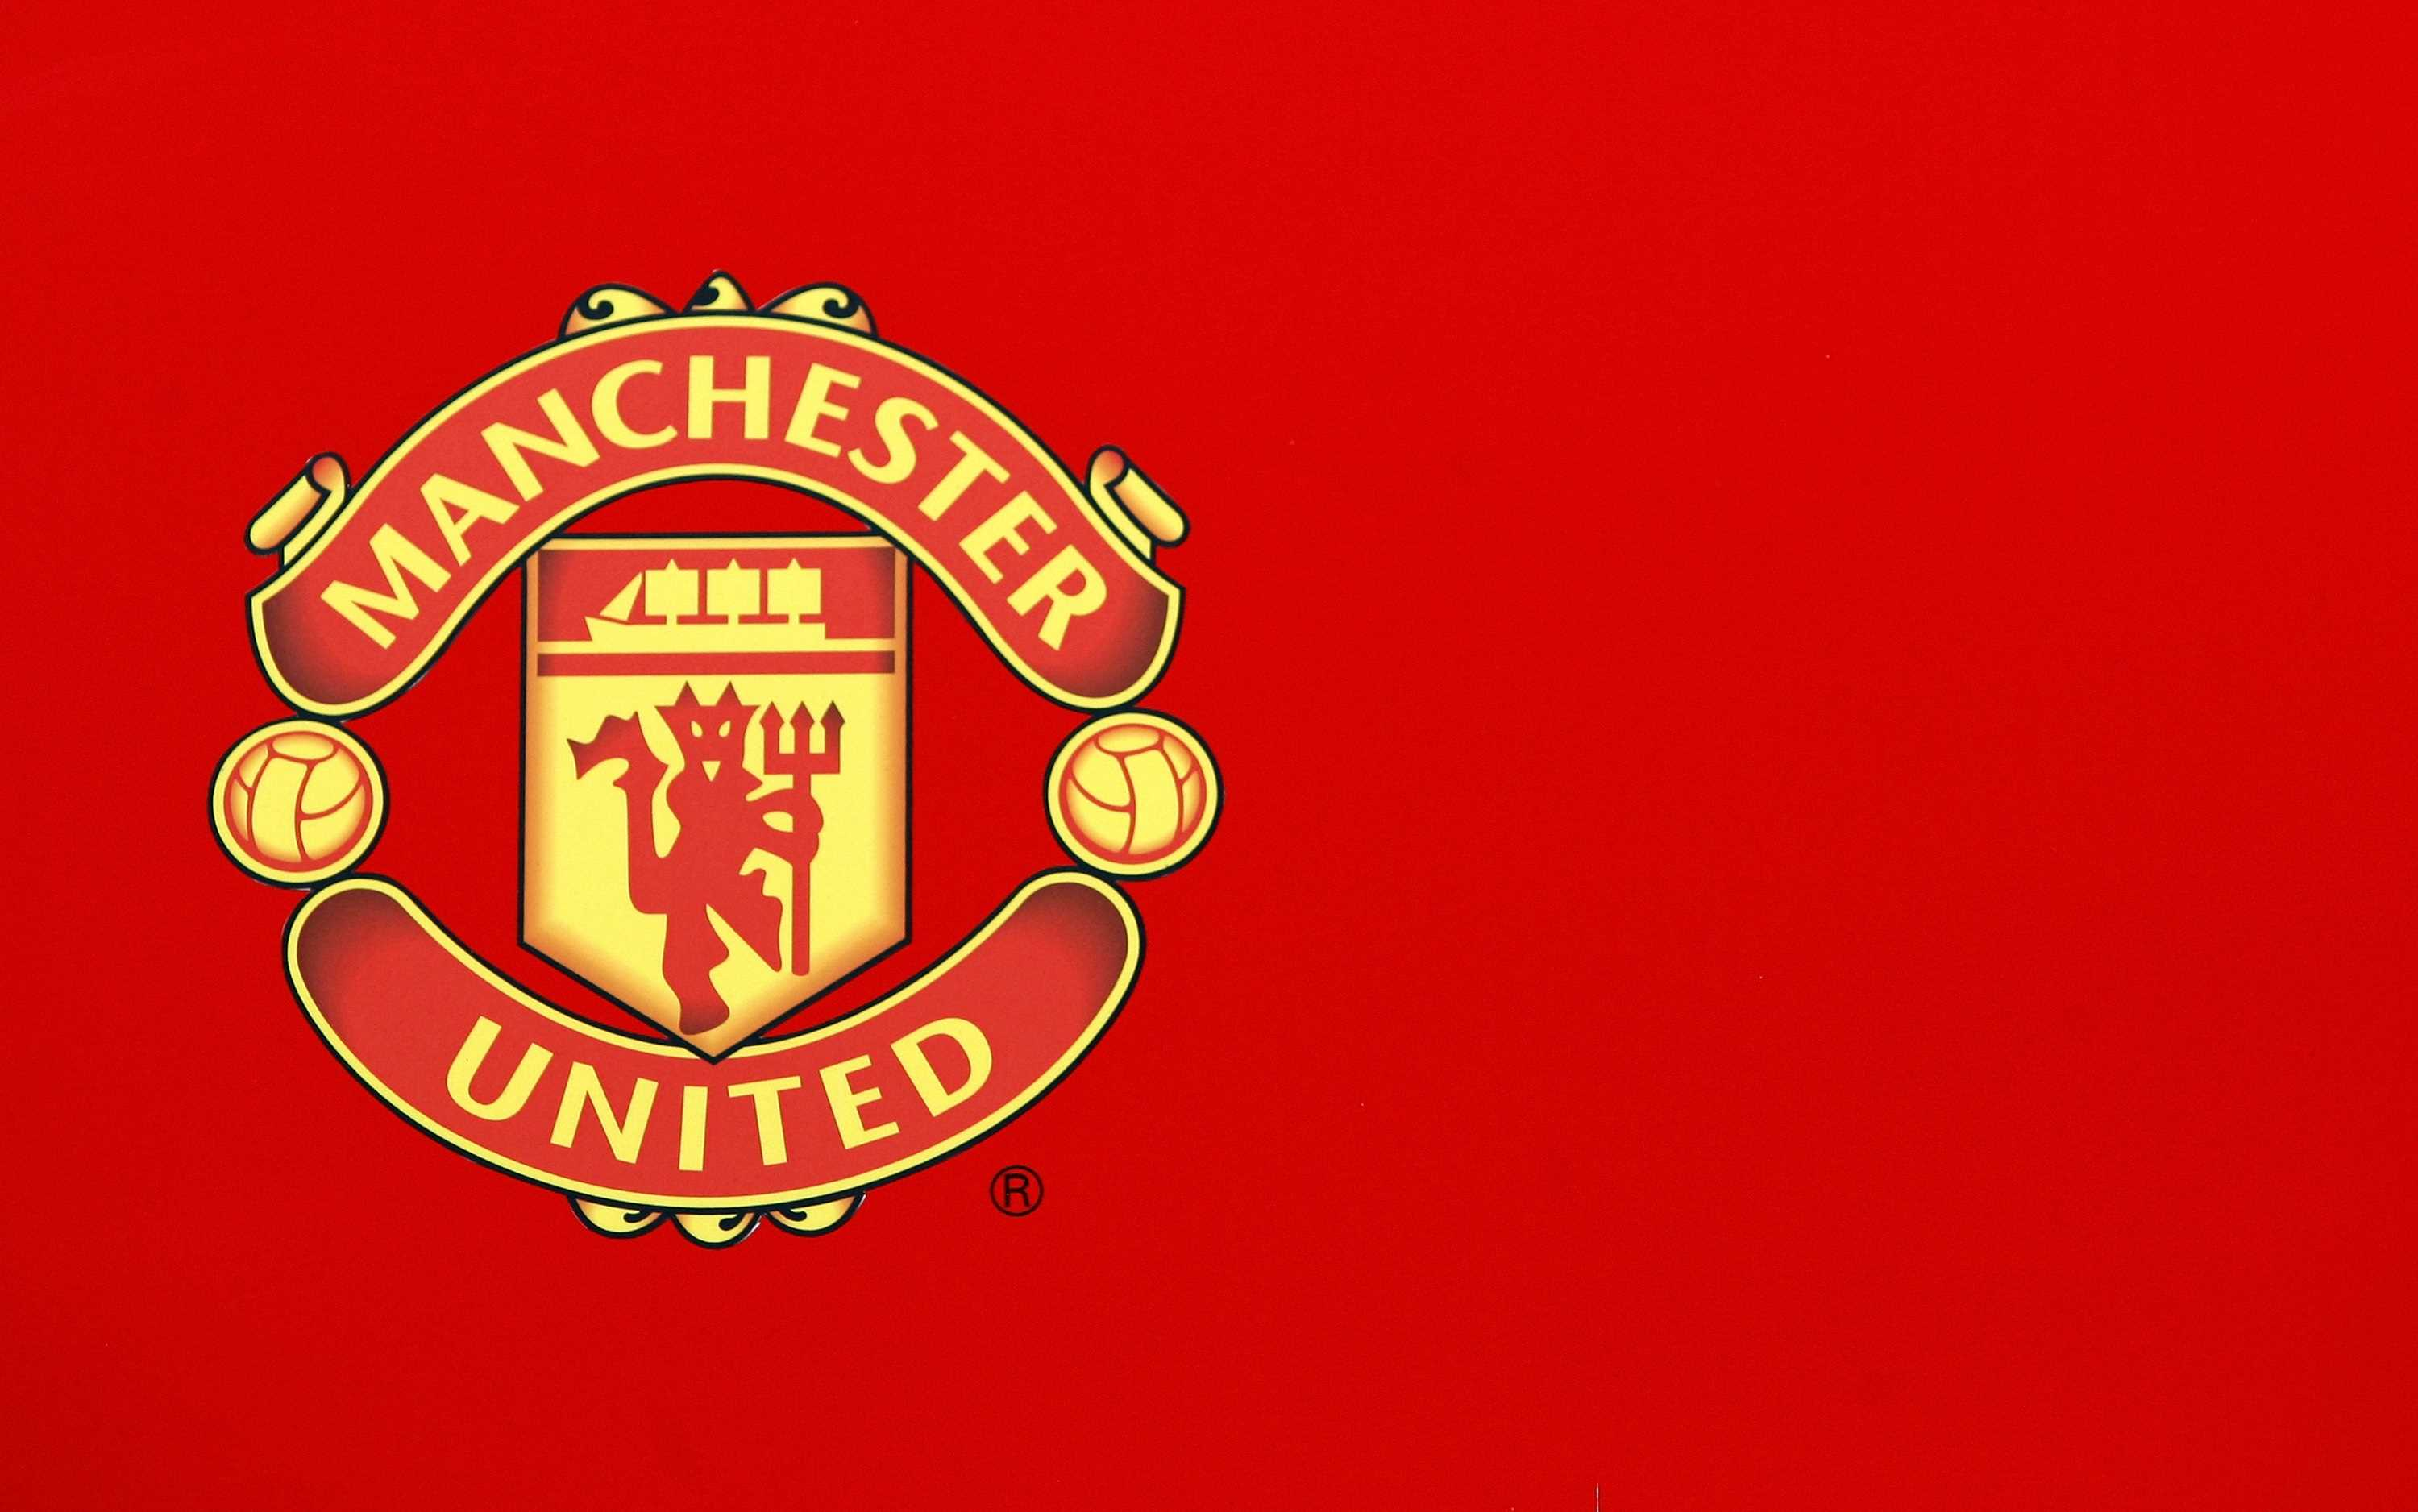 Chevrolet to replace aon as manchester united shirt for Manchester united shirt sponsor